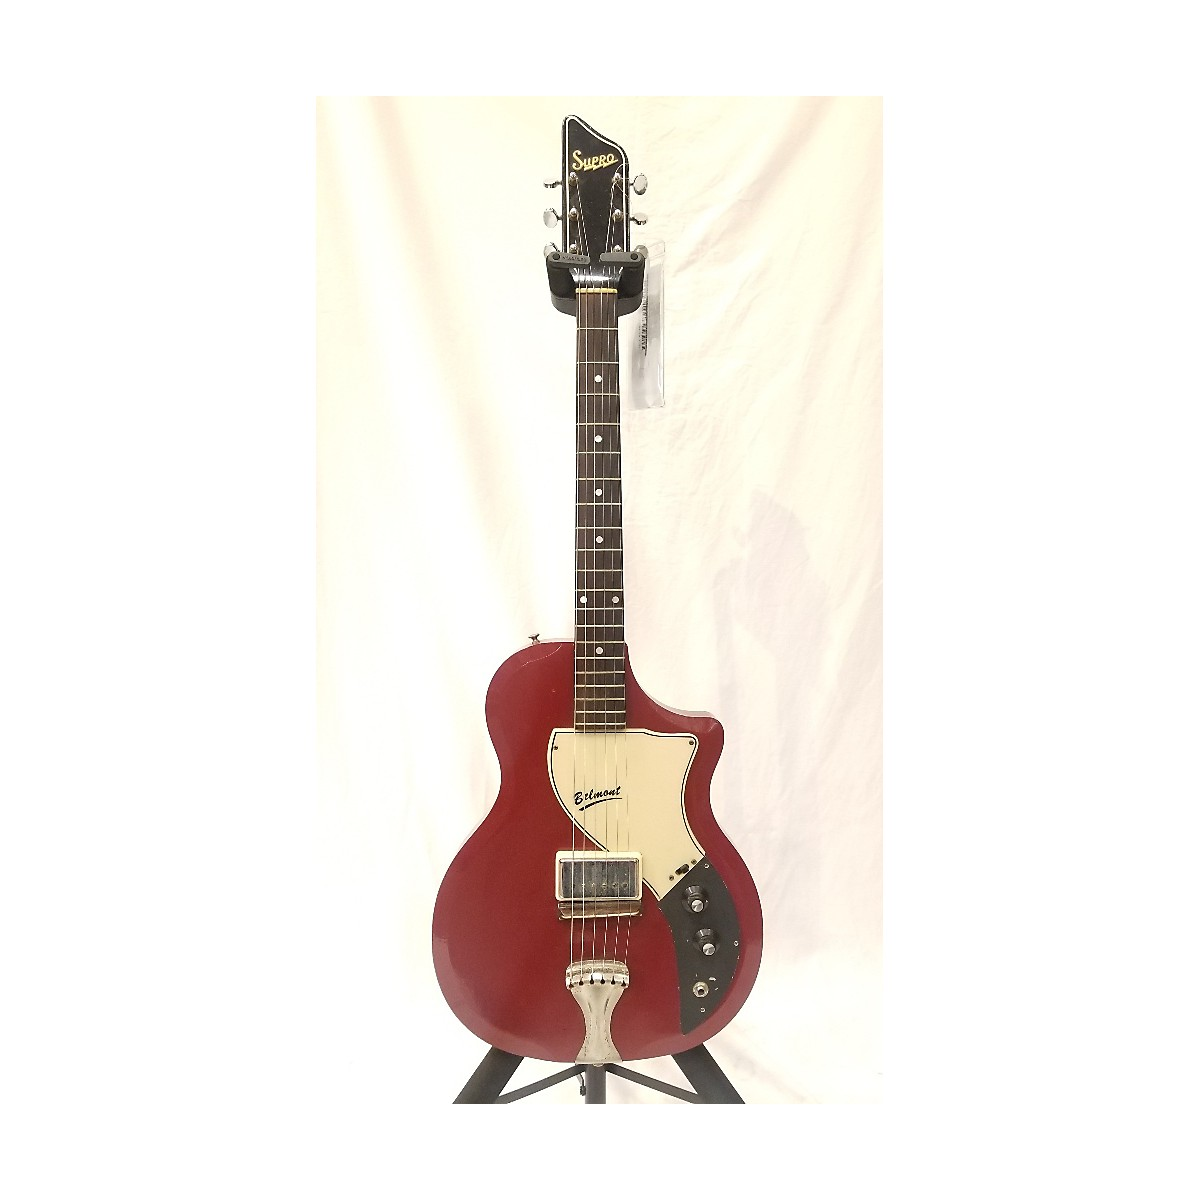 Supro 1960 Belmont Solid Body Electric Guitar